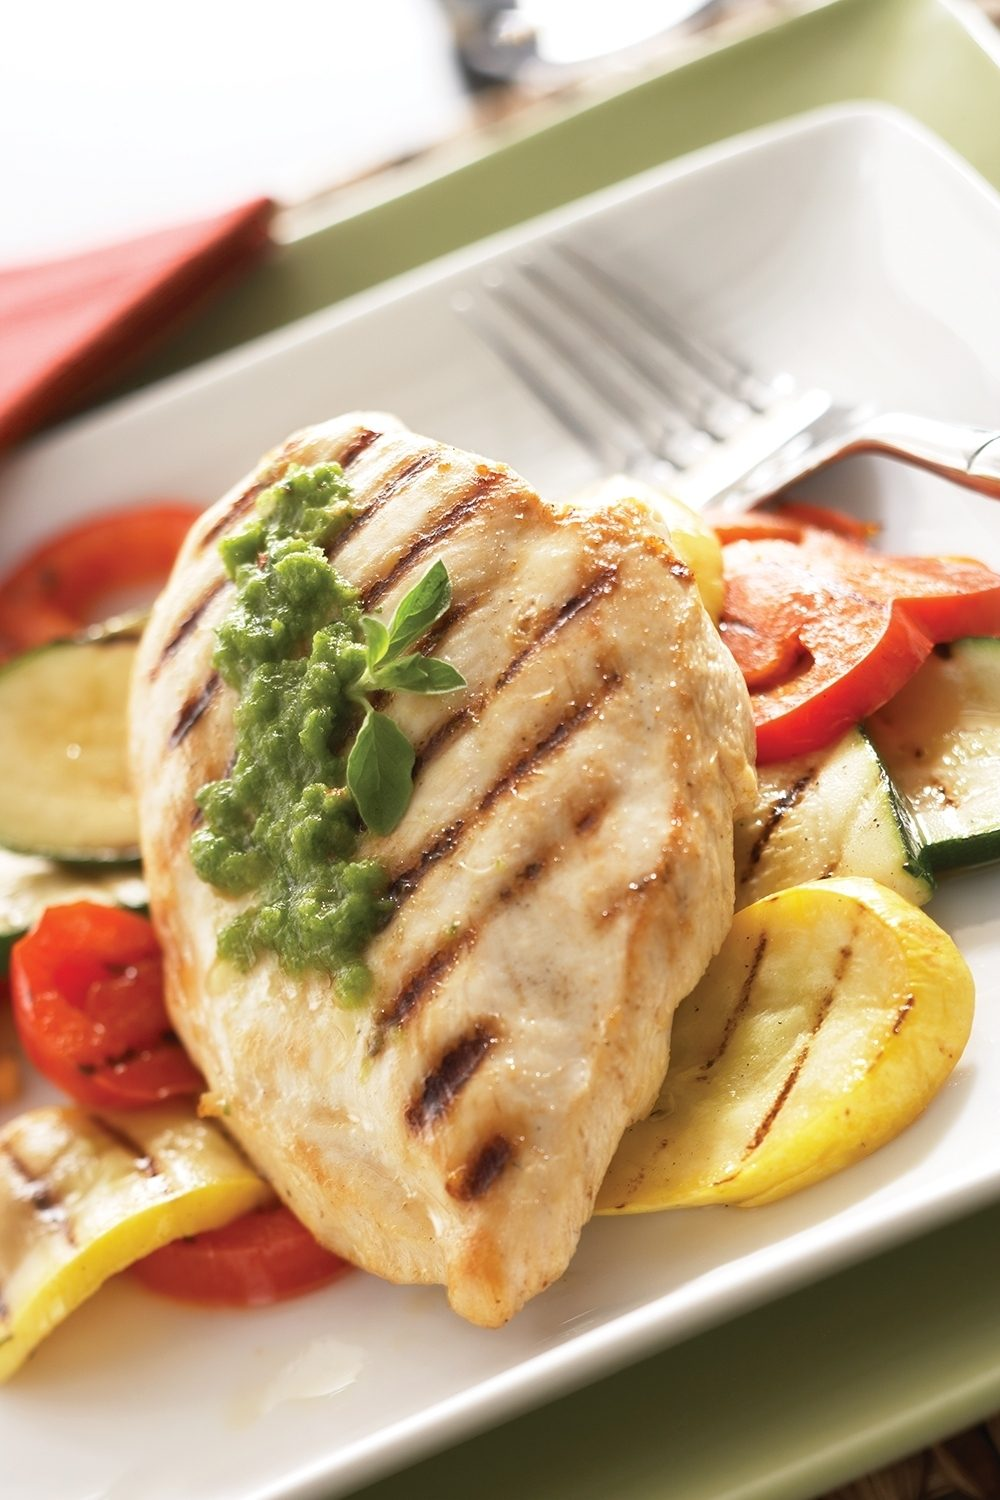 Plump juicy chicken with an aromatic  chimichurri sauce promises a succulent supper with just a hint of Latin spice.